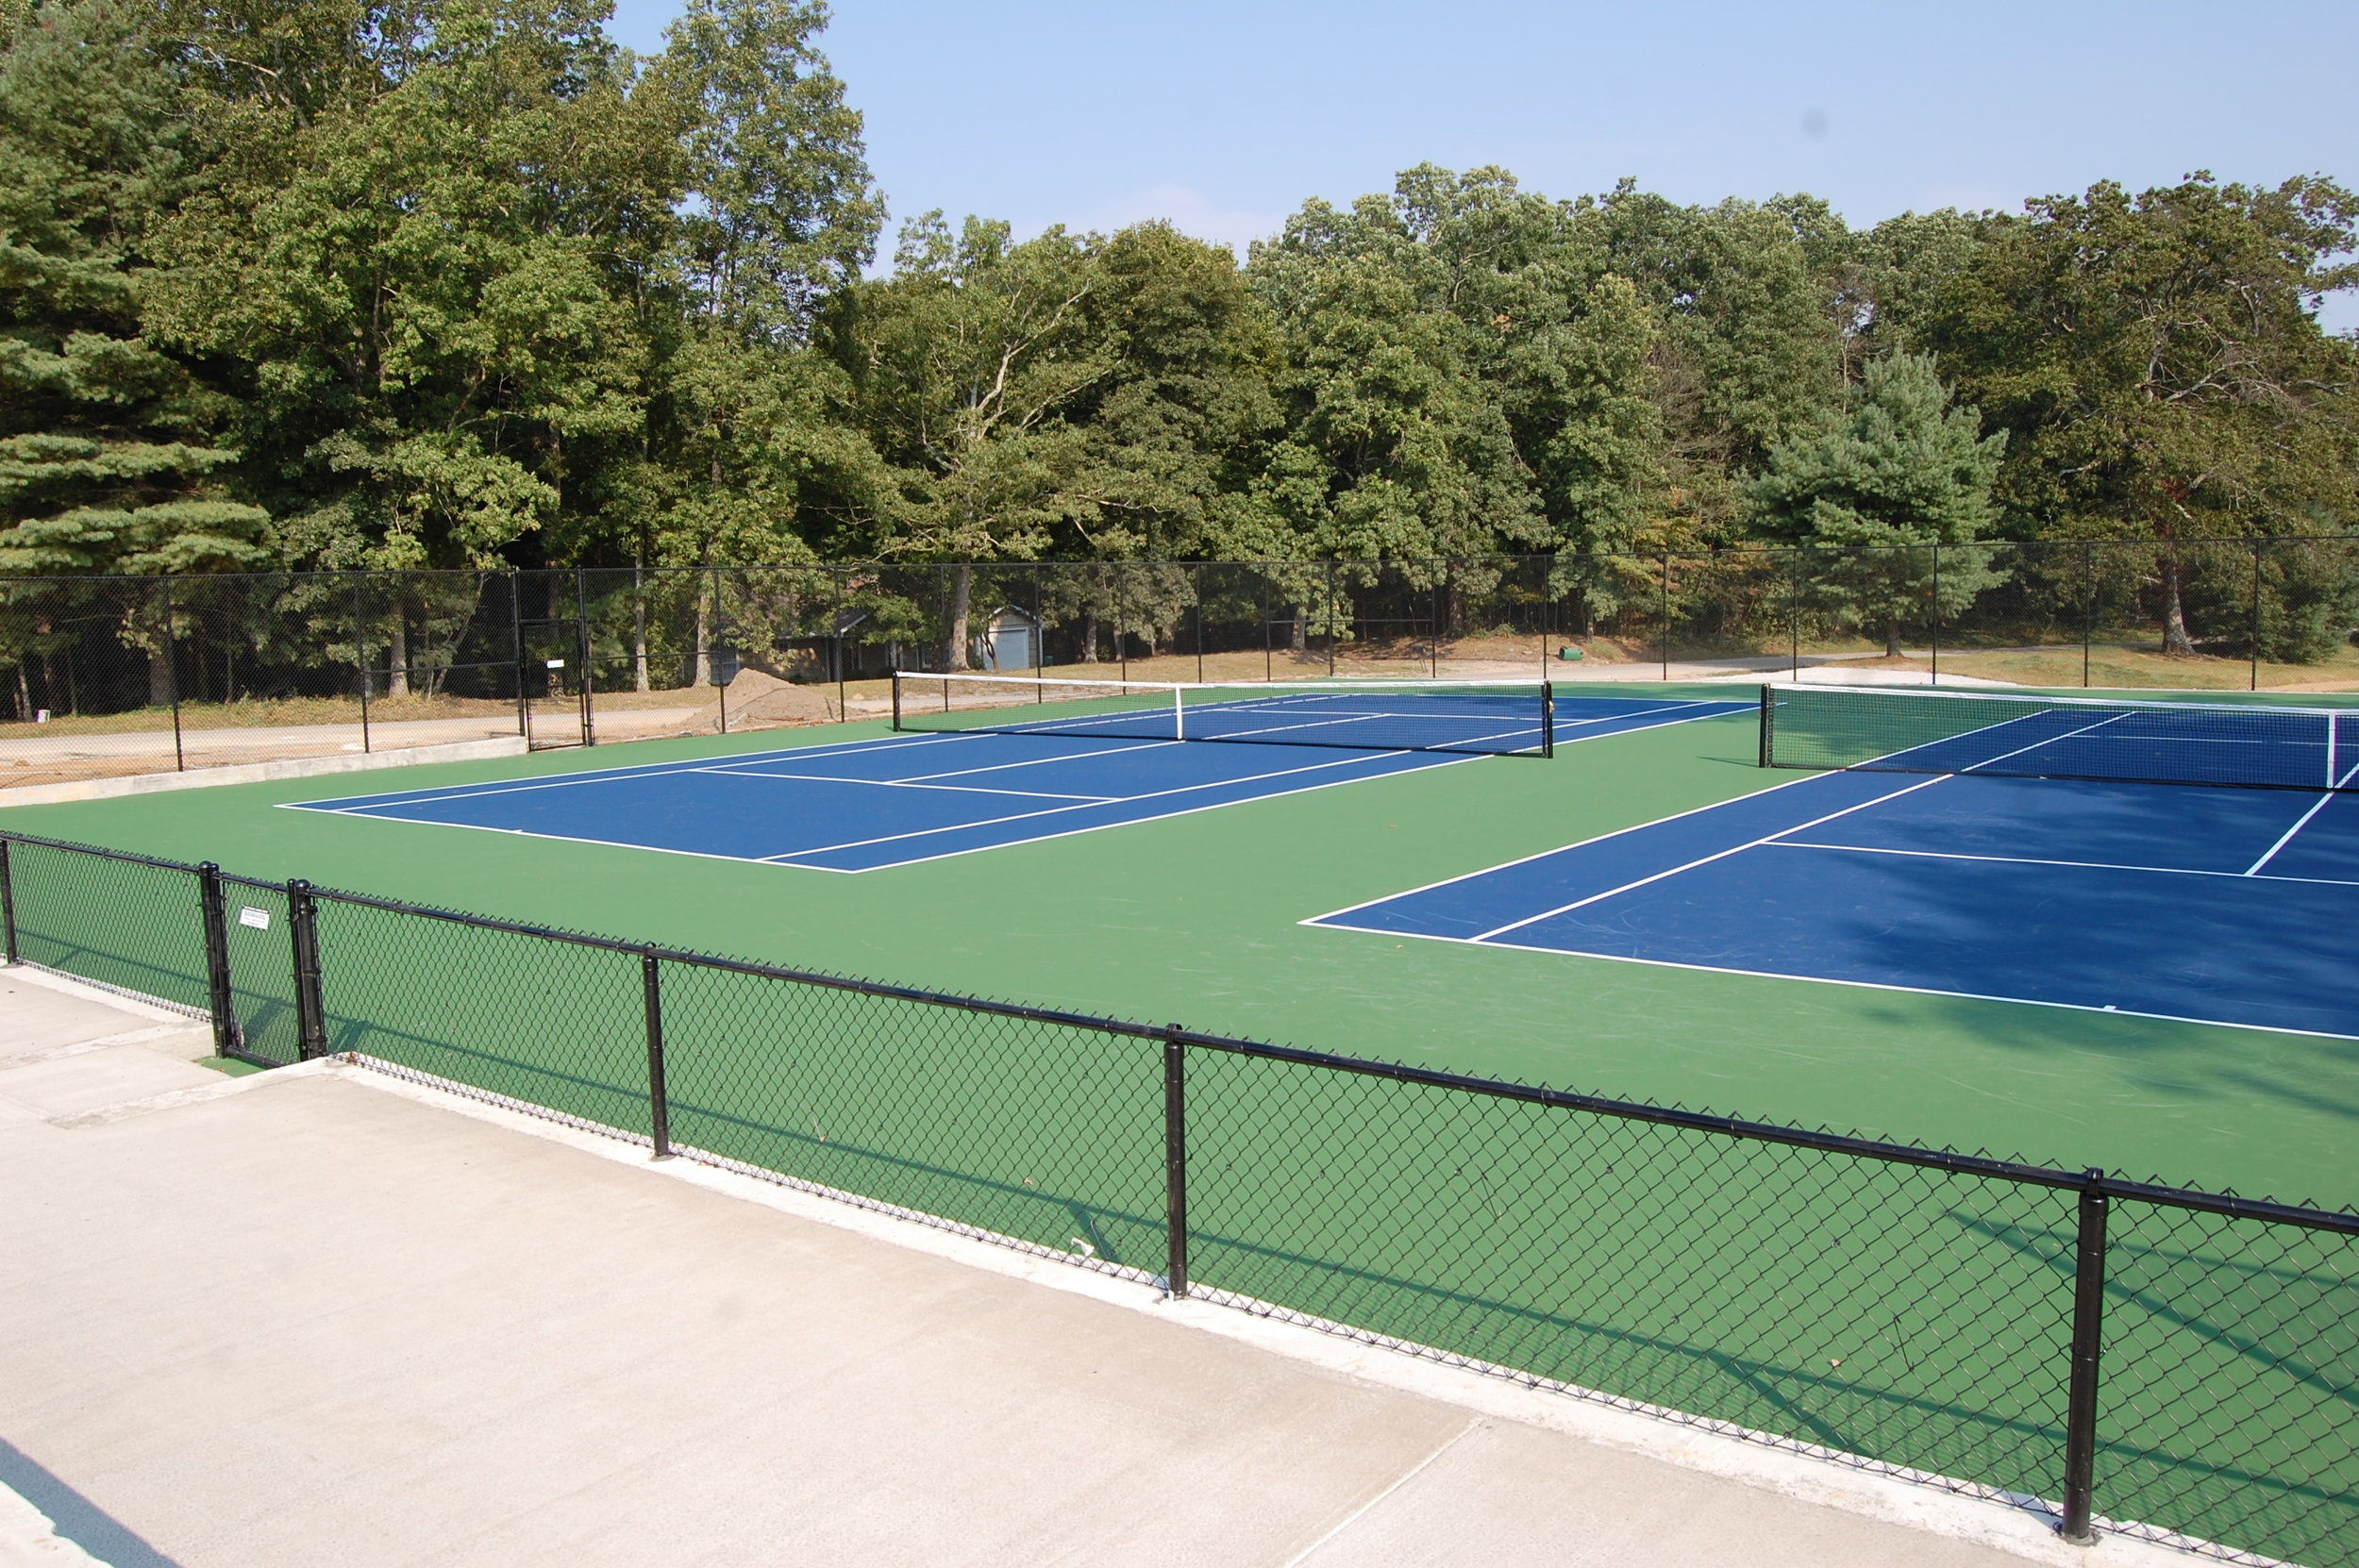 The University of the South received a Distinguished Outdoor Tennis Facility Award in 2013for new construction of two varsity tennis courts. The project consisted of site work, retaining walls, base construction, fencing and surfacing to add two courts to their existing varsity tennis facility in Sewanee, TN. -